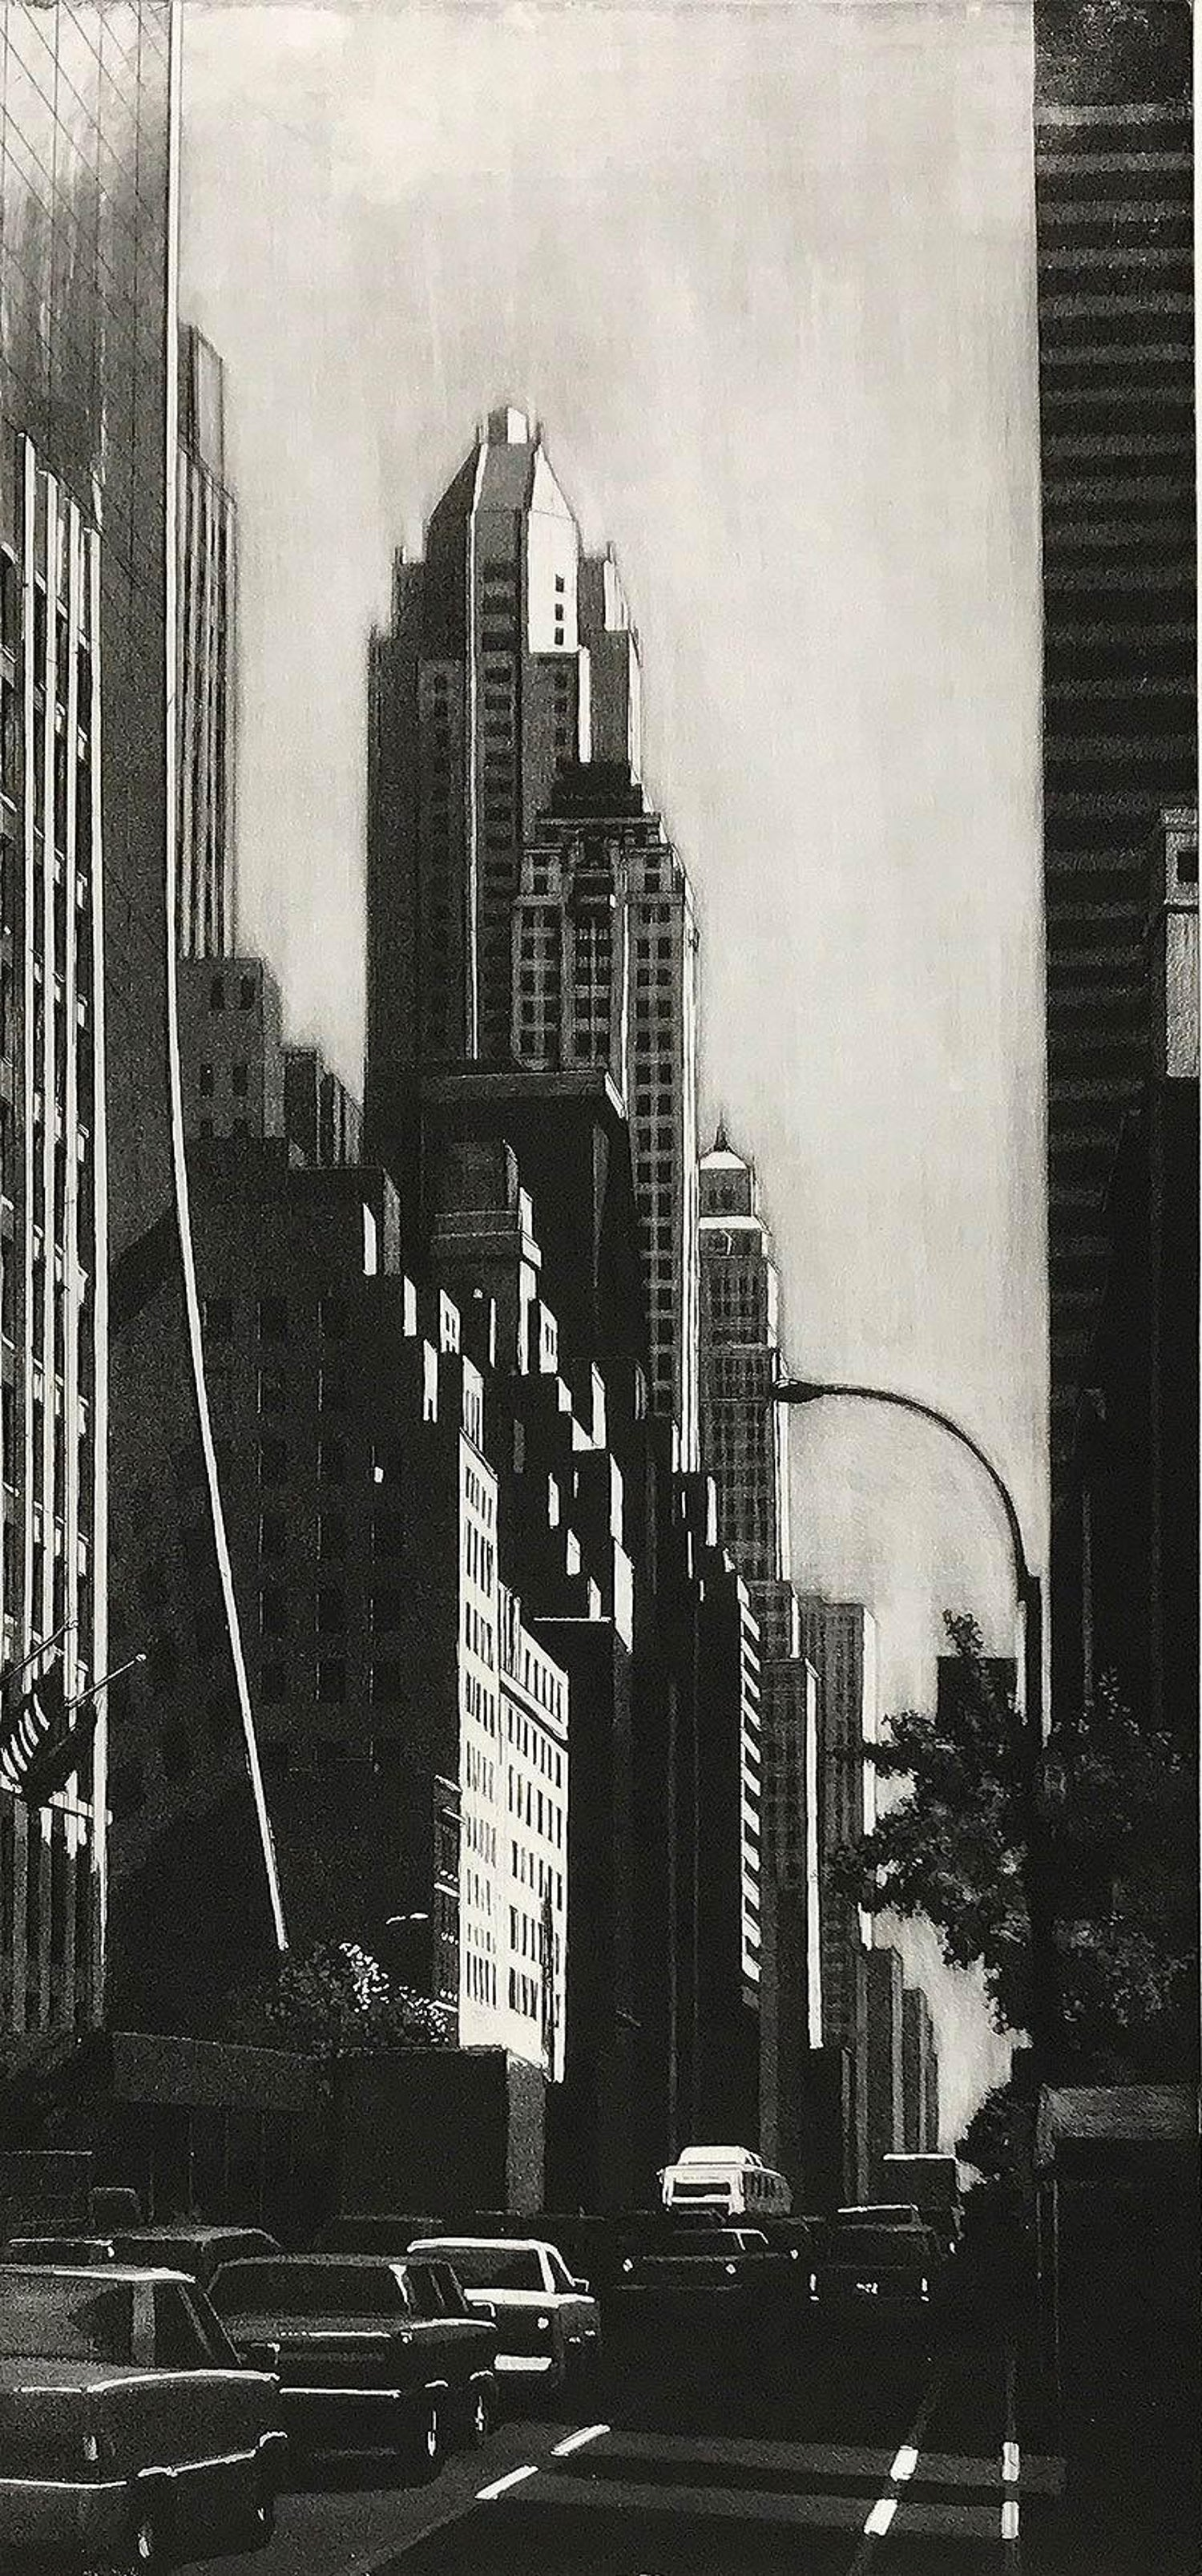 57th St  Looking East (View down Sixth Ave/ Fuller BLDG, the Ritz and IBM  seen)